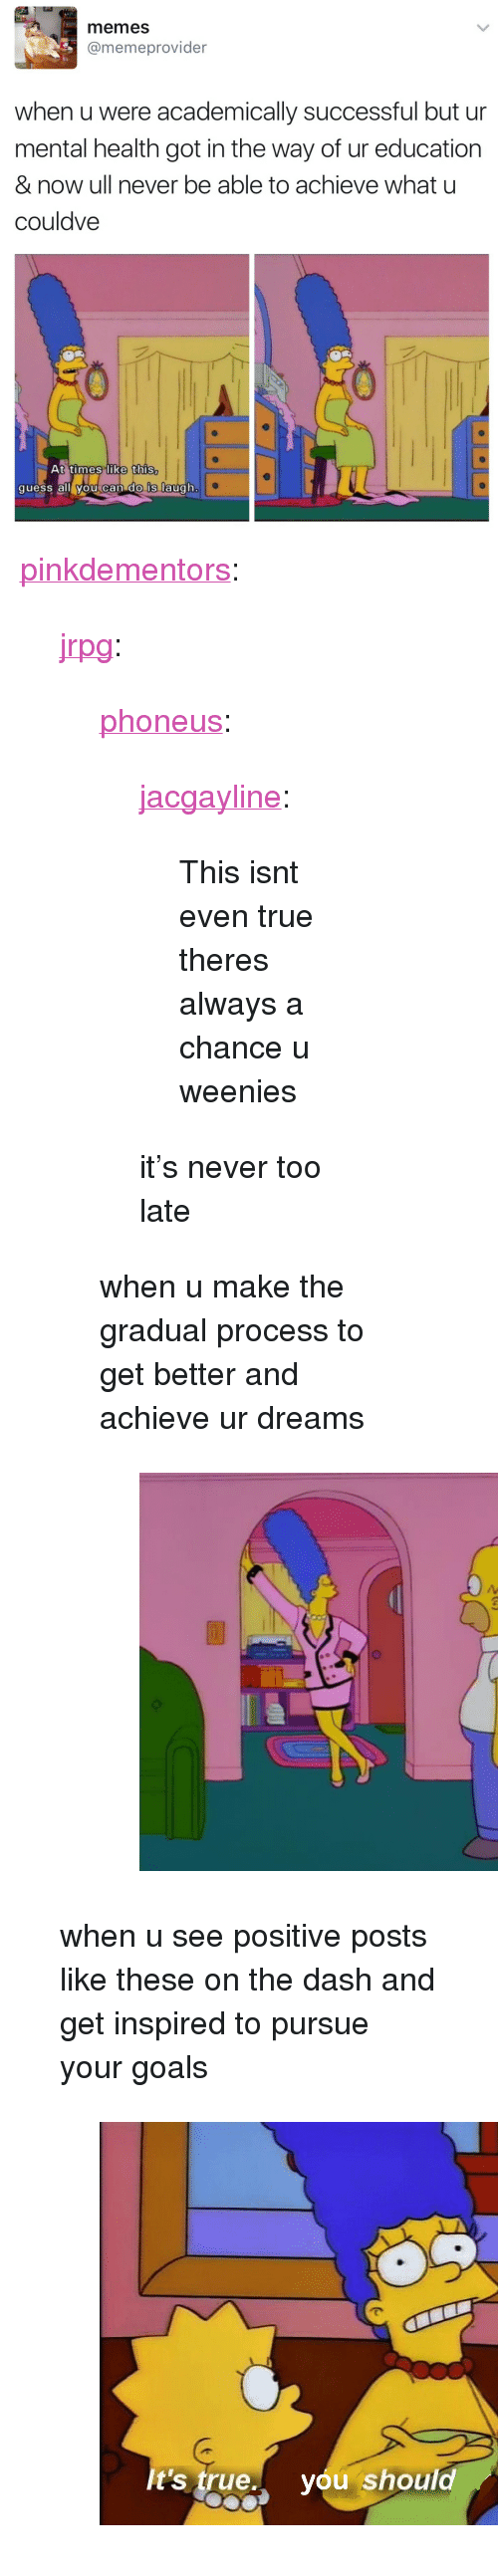 "Goals, Memes, and True: memes  @memeprovider  when u were academically successful but ur  mental health got in the way of ur education  & now ull never be able to achieve what u  couldve  t times like this  quess all vou can dO Is augh <p><a href=""http://pinkdementors.tumblr.com/post/166030775047/jrpg-phoneus-jacgayline-this-isnt-even"" class=""tumblr_blog"">pinkdementors</a>:</p> <blockquote> <p><a href=""http://jrpg.tumblr.com/post/155723269175"" class=""tumblr_blog"">jrpg</a>:</p> <blockquote> <p><a href=""https://phoneus.tumblr.com/post/155722488754/this-isnt-even-true-theres-always-a-chance-u"" class=""tumblr_blog"">phoneus</a>:</p> <blockquote> <p><a href=""http://jacgayline.tumblr.com/post/155722439713/this-isnt-even-true-theres-always-a-chance-u"" class=""tumblr_blog"">jacgayline</a>:</p>  <blockquote><p>This isnt even true theres always a chance u weenies</p></blockquote>  <p>it's never too late</p> </blockquote> <p>when u make the gradual process to get better and achieve ur dreams</p> <figure class=""tmblr-full"" data-orig-height=""456"" data-orig-width=""615""><img src=""https://78.media.tumblr.com/295a88bf73618c1d435dce540b512f1f/tumblr_inline_ojmknaSfZu1qis66x_540.png"" data-orig-height=""456"" data-orig-width=""615""/></figure></blockquote> <p>when u see positive posts like these on the dash and get inspired to pursue your goals</p> <figure class=""tmblr-full"" data-orig-height=""405"" data-orig-width=""540""><img src=""https://78.media.tumblr.com/1cc520c05c8f2a163c9d8fc15168b307/tumblr_inline_oxa7wlc7SU1rva0l3_540.jpg"" data-orig-height=""405"" data-orig-width=""540""/></figure></blockquote>"